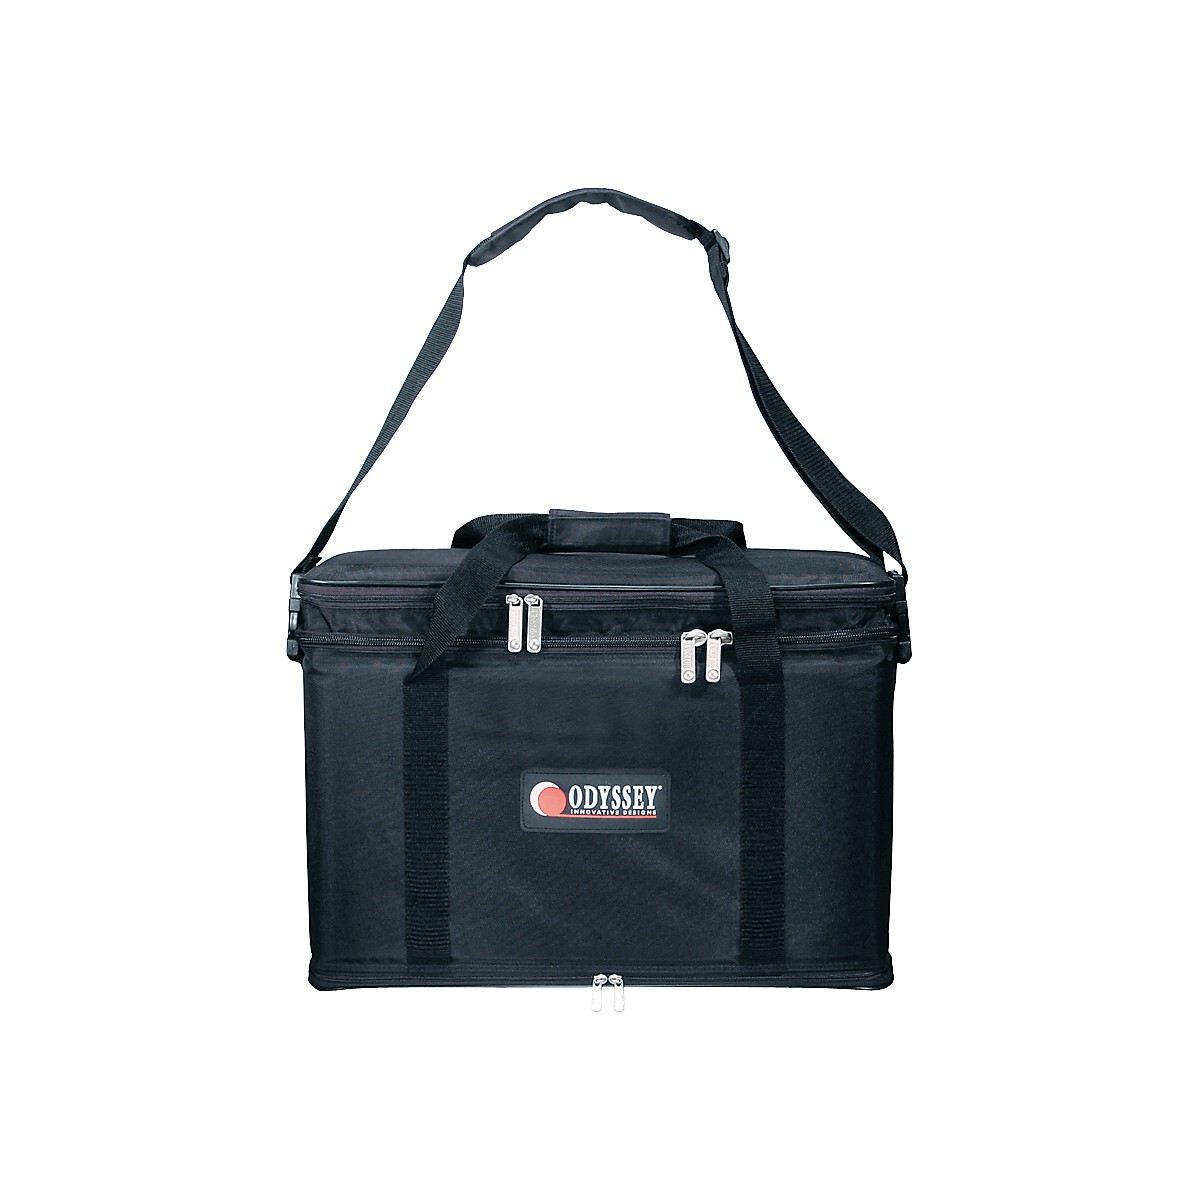 Odyssey 3-Space Rack Bag